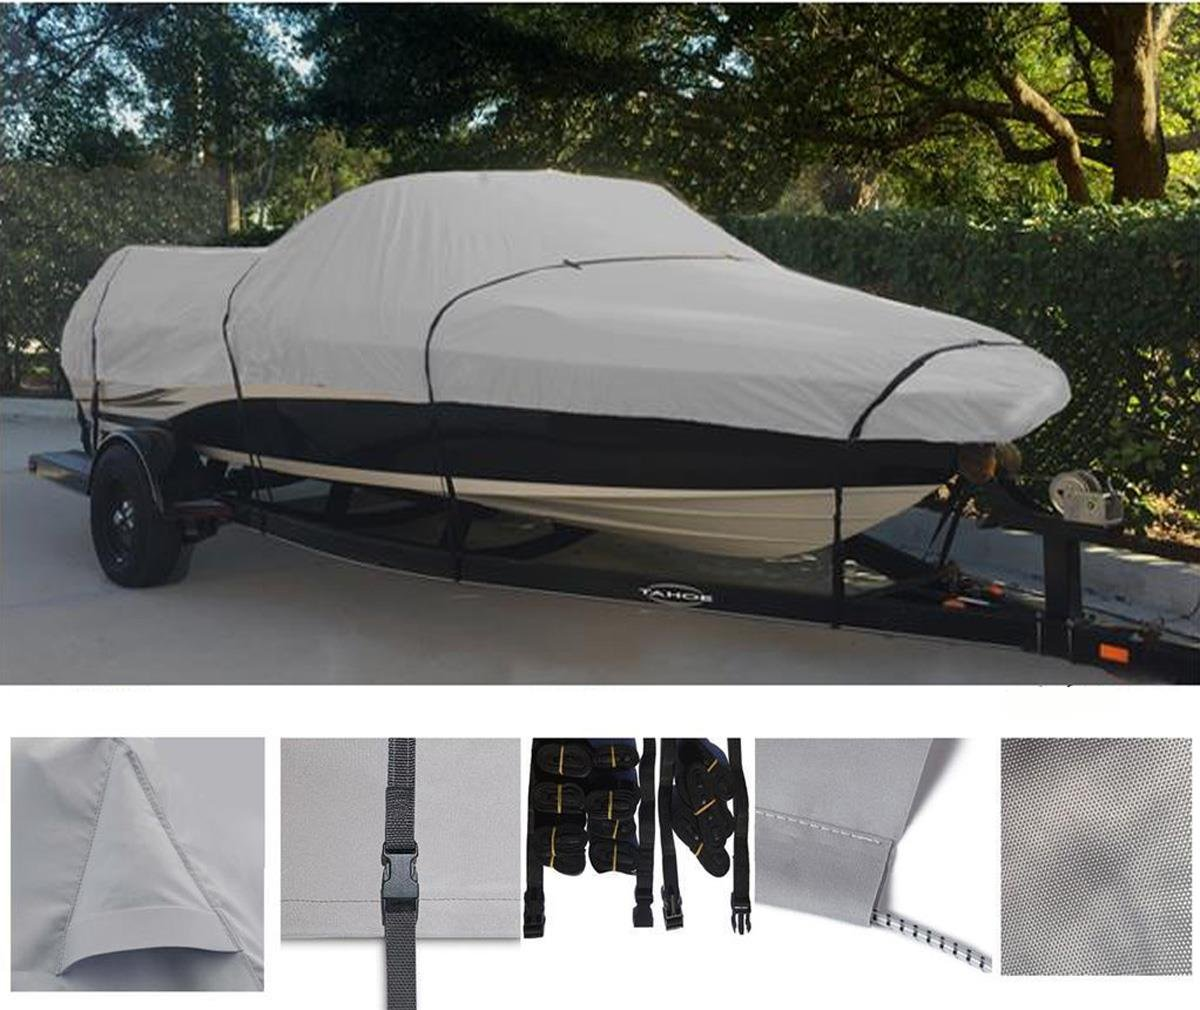 GREY, STORAGE, TRAVEL, MOORING BOAT COVER FOR Bayliner 2150 Capri Cuddy 1984 1985 1986 by SBU